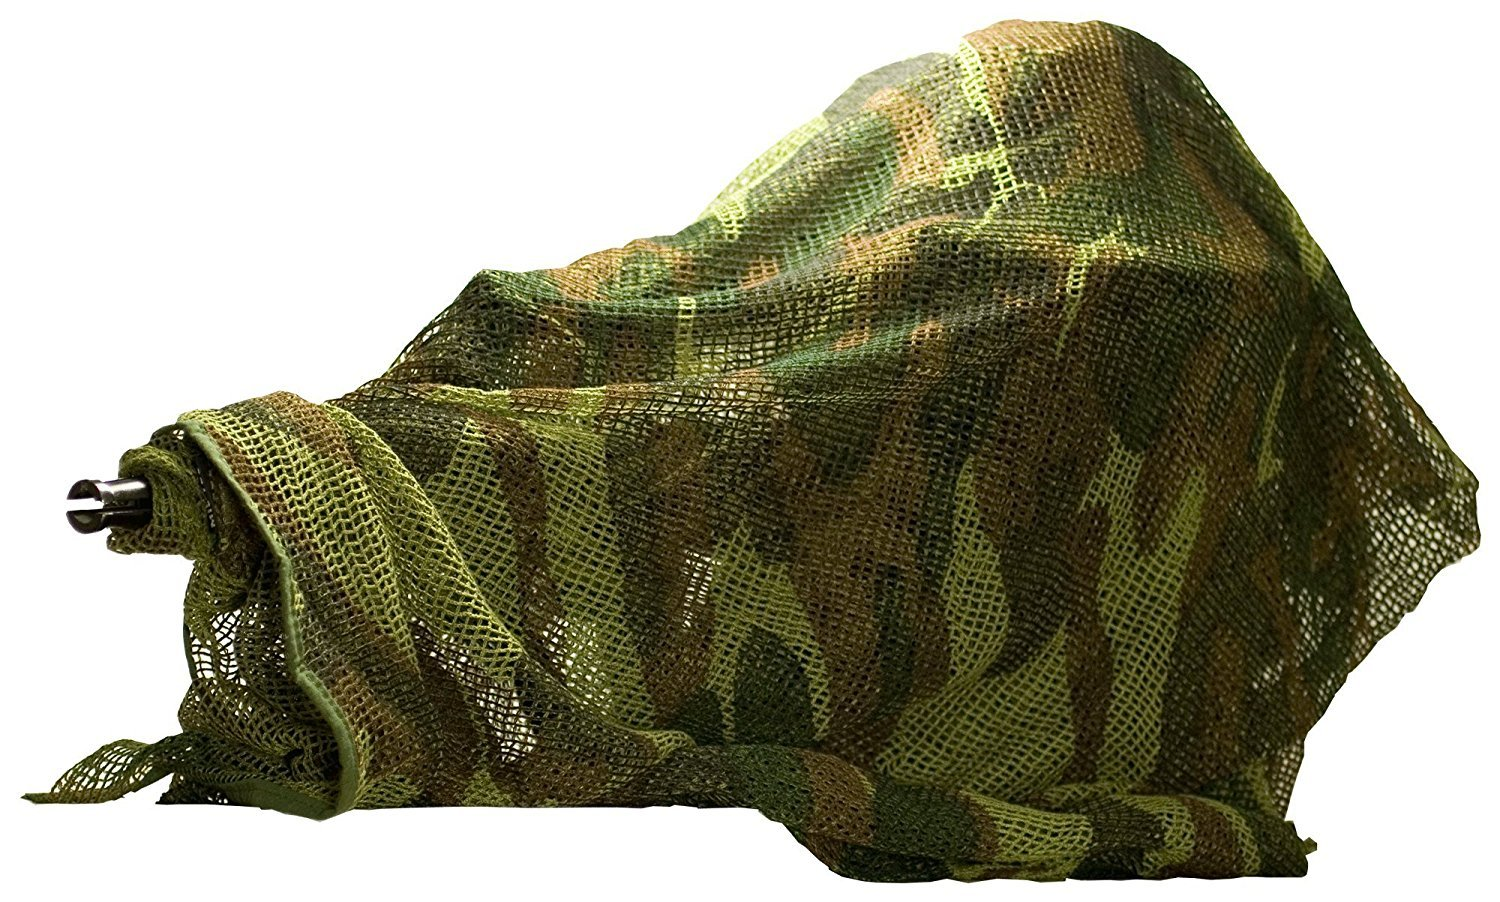 Tactical Camo Pattern MILITARY NETTING SCARF - Army Style Scrim Net Patrol Head Wraps with Camouflage Option Mil-Tec EB10000001061